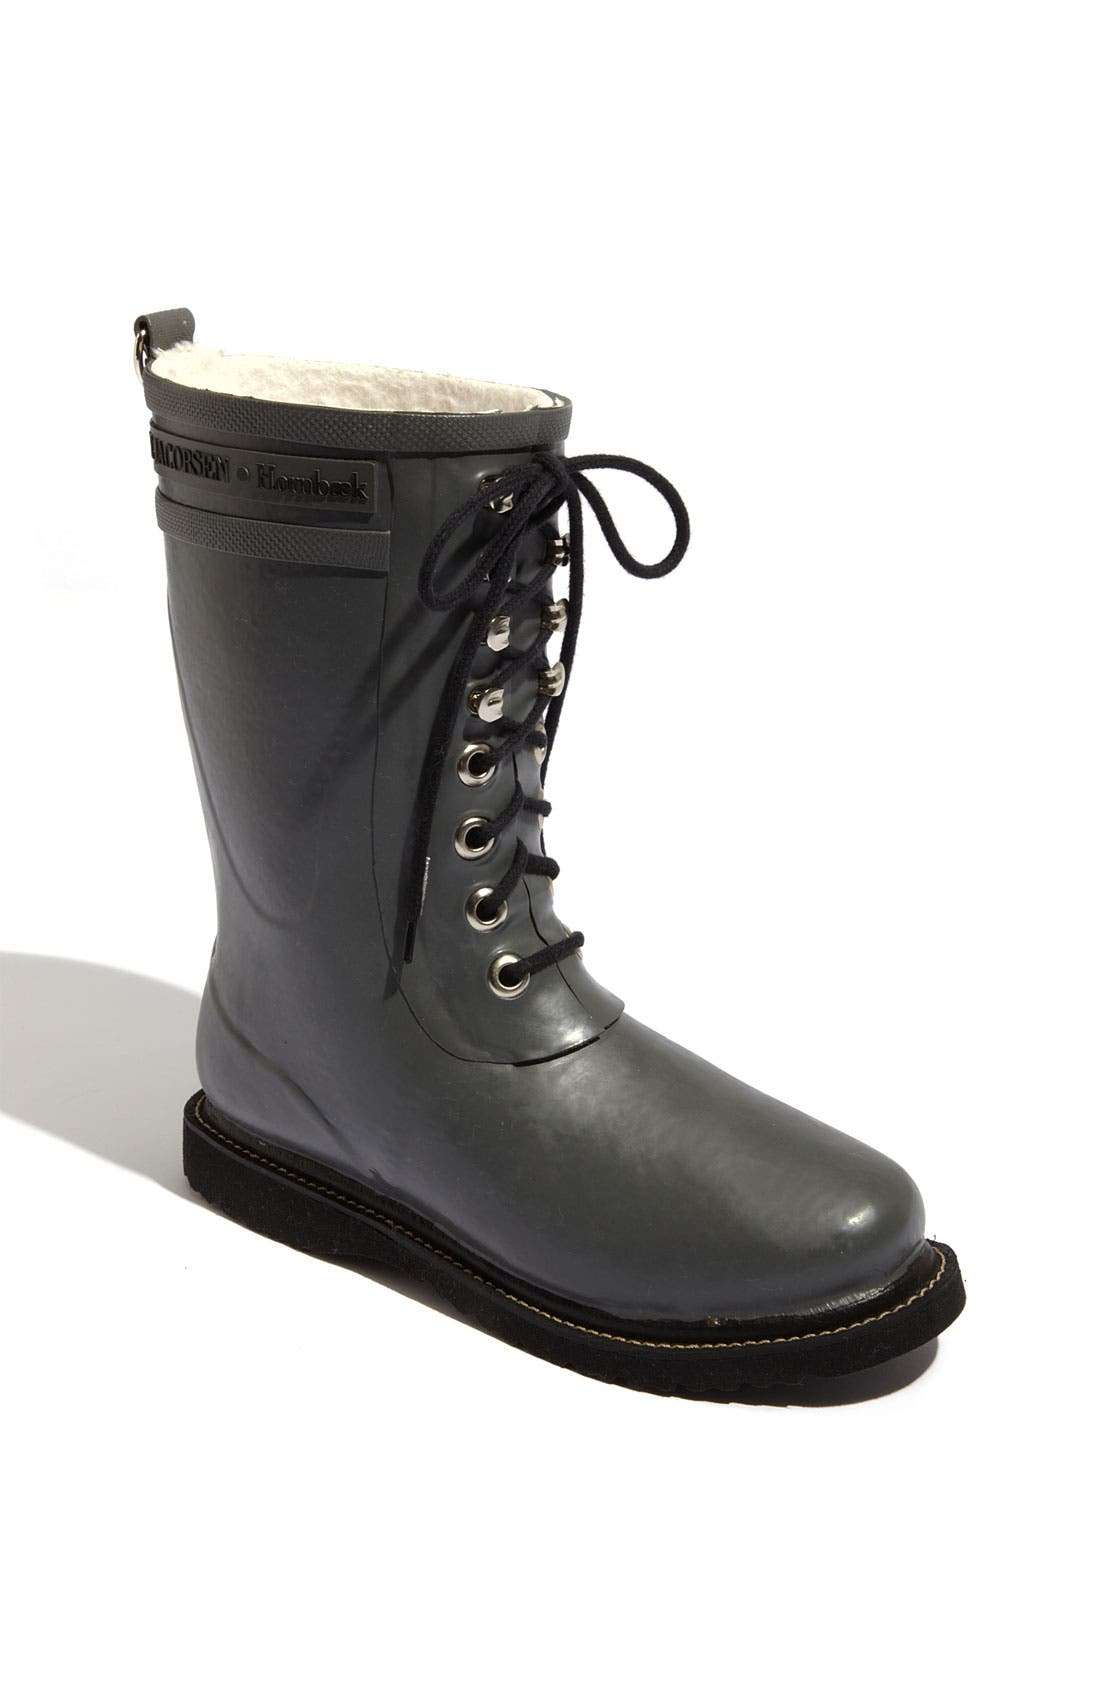 Main Image - Ilse Jacobsen Hornbæk Rubber Boot